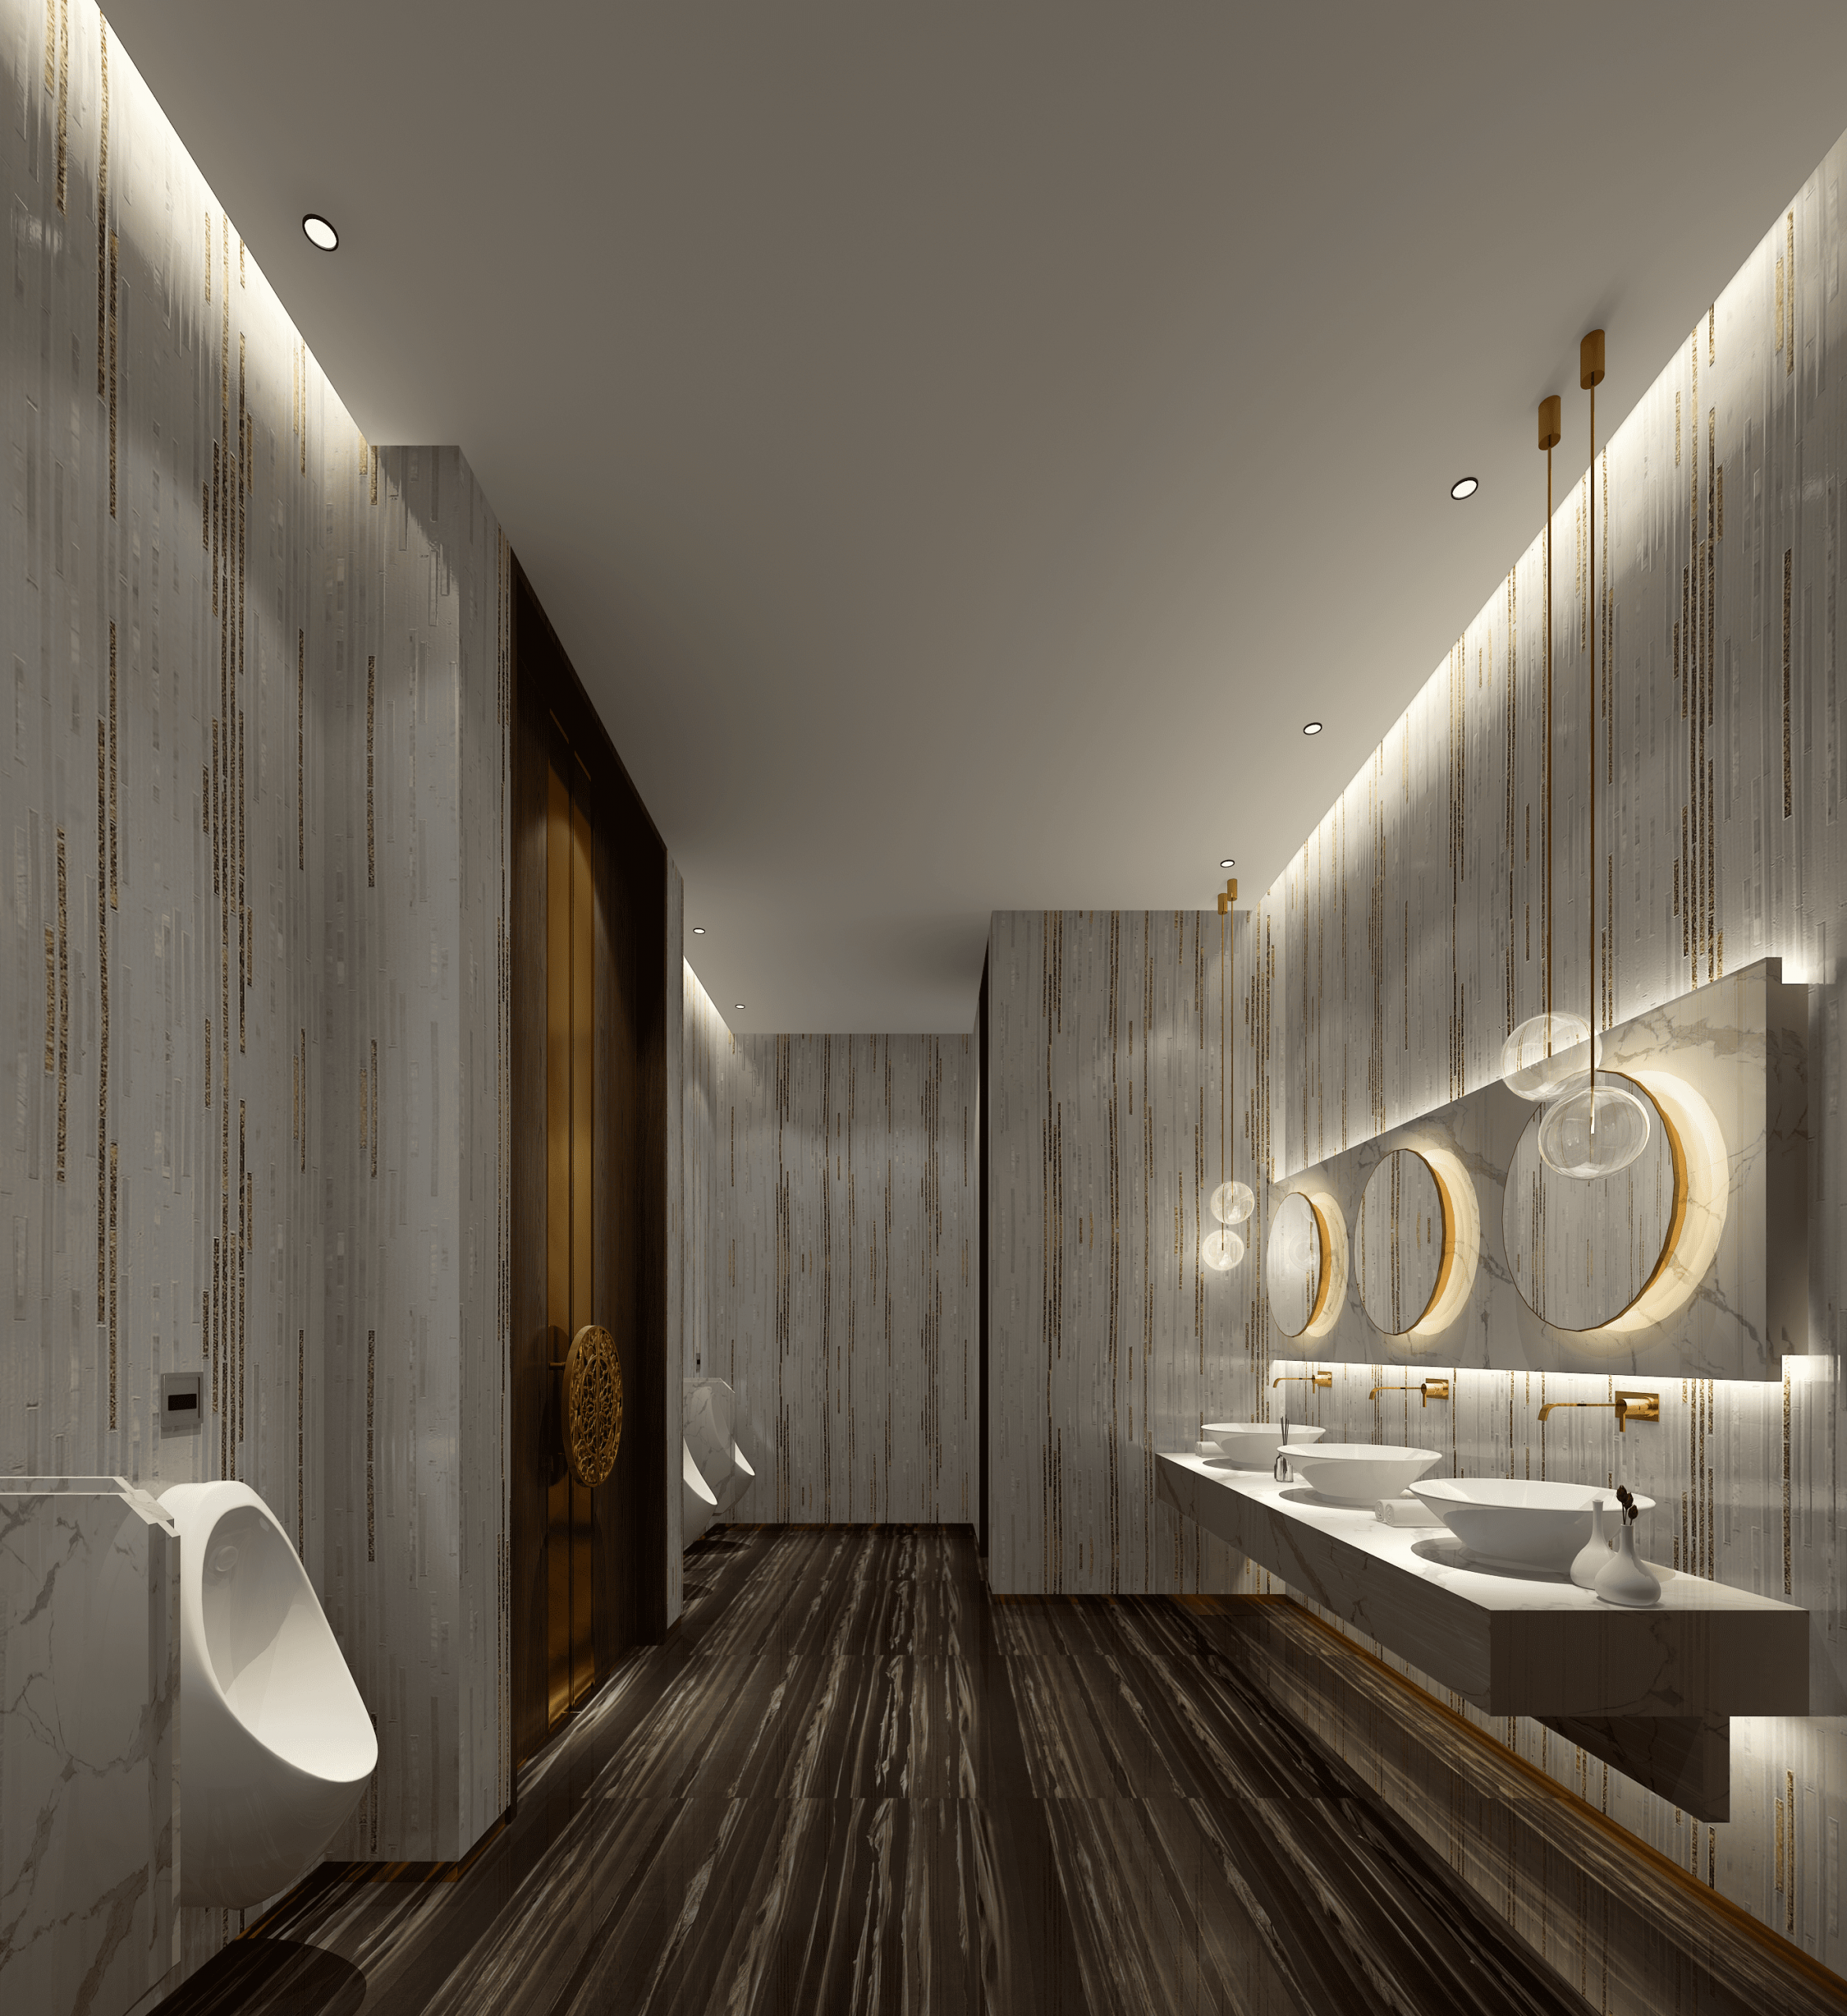 Can the bathroom design renderings be designed like this? Really long-sighted!